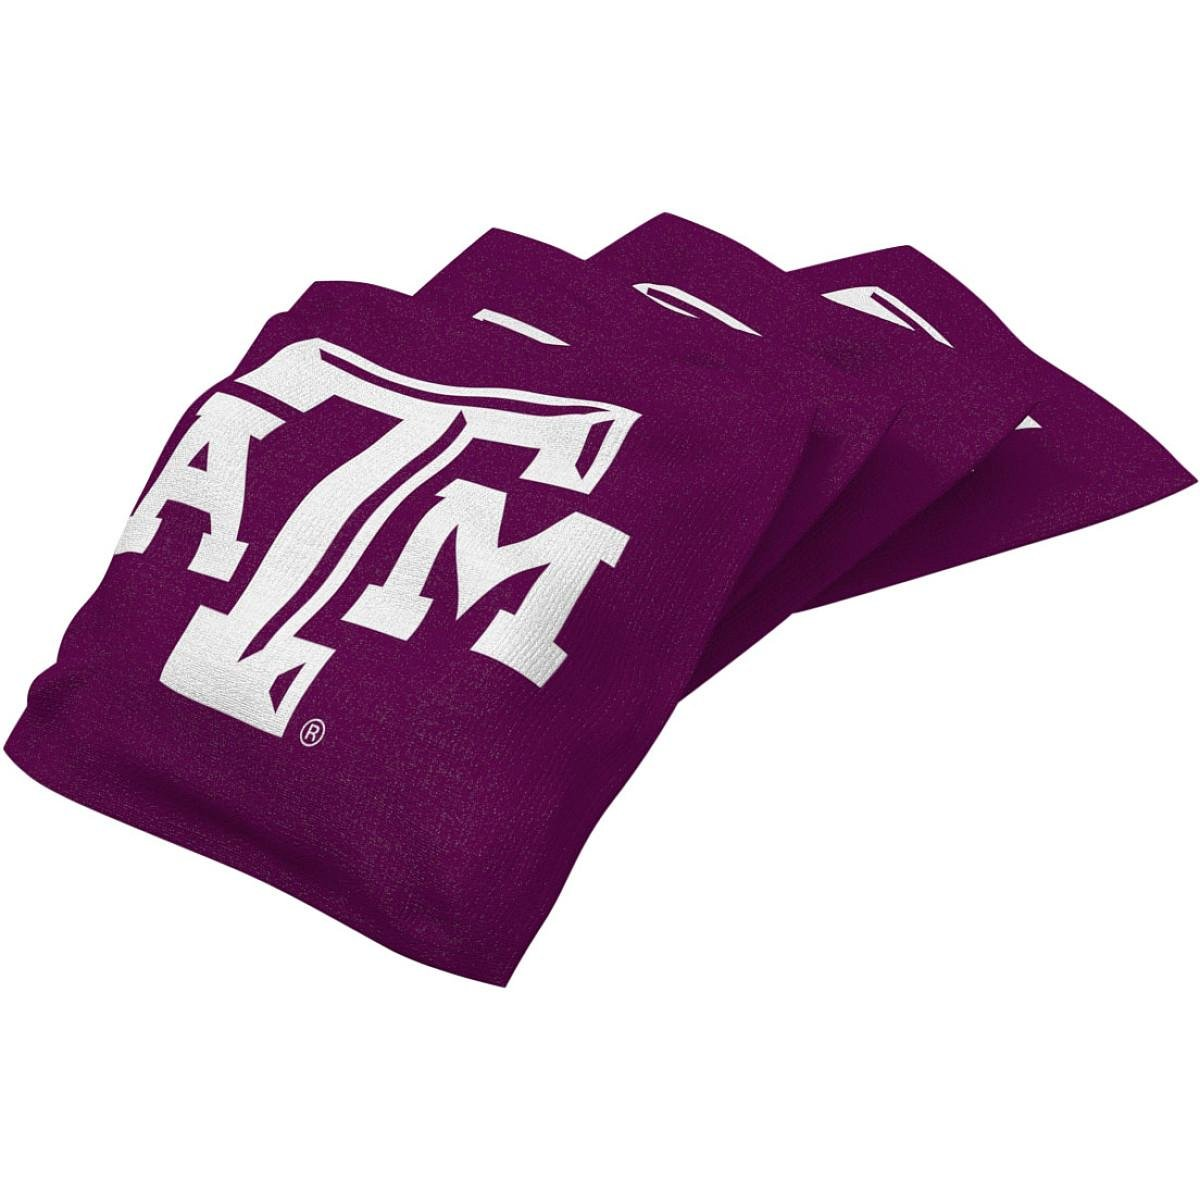 Wild Sports NCAA College Texas A&M Aggies Red Authentic Cornhole Bean Bag Set (4 Pack) by Wild Sports (Image #1)